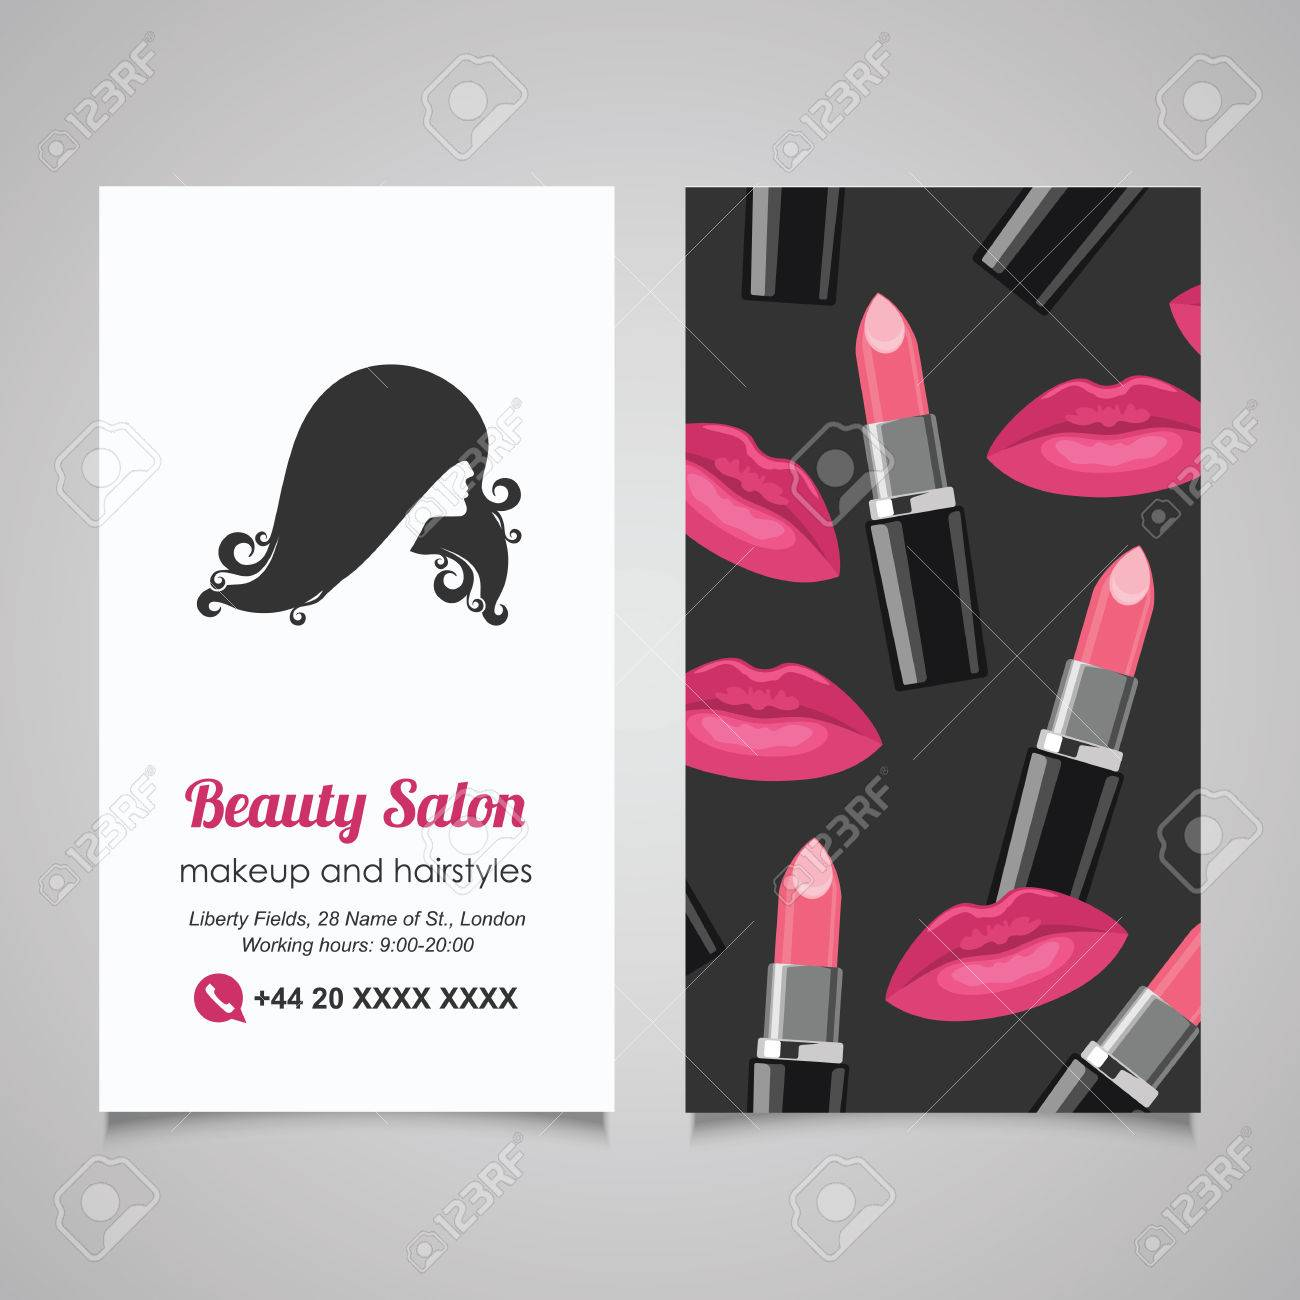 Beauty Salon Business Card Design Template With Beautiful Woman\'s ...